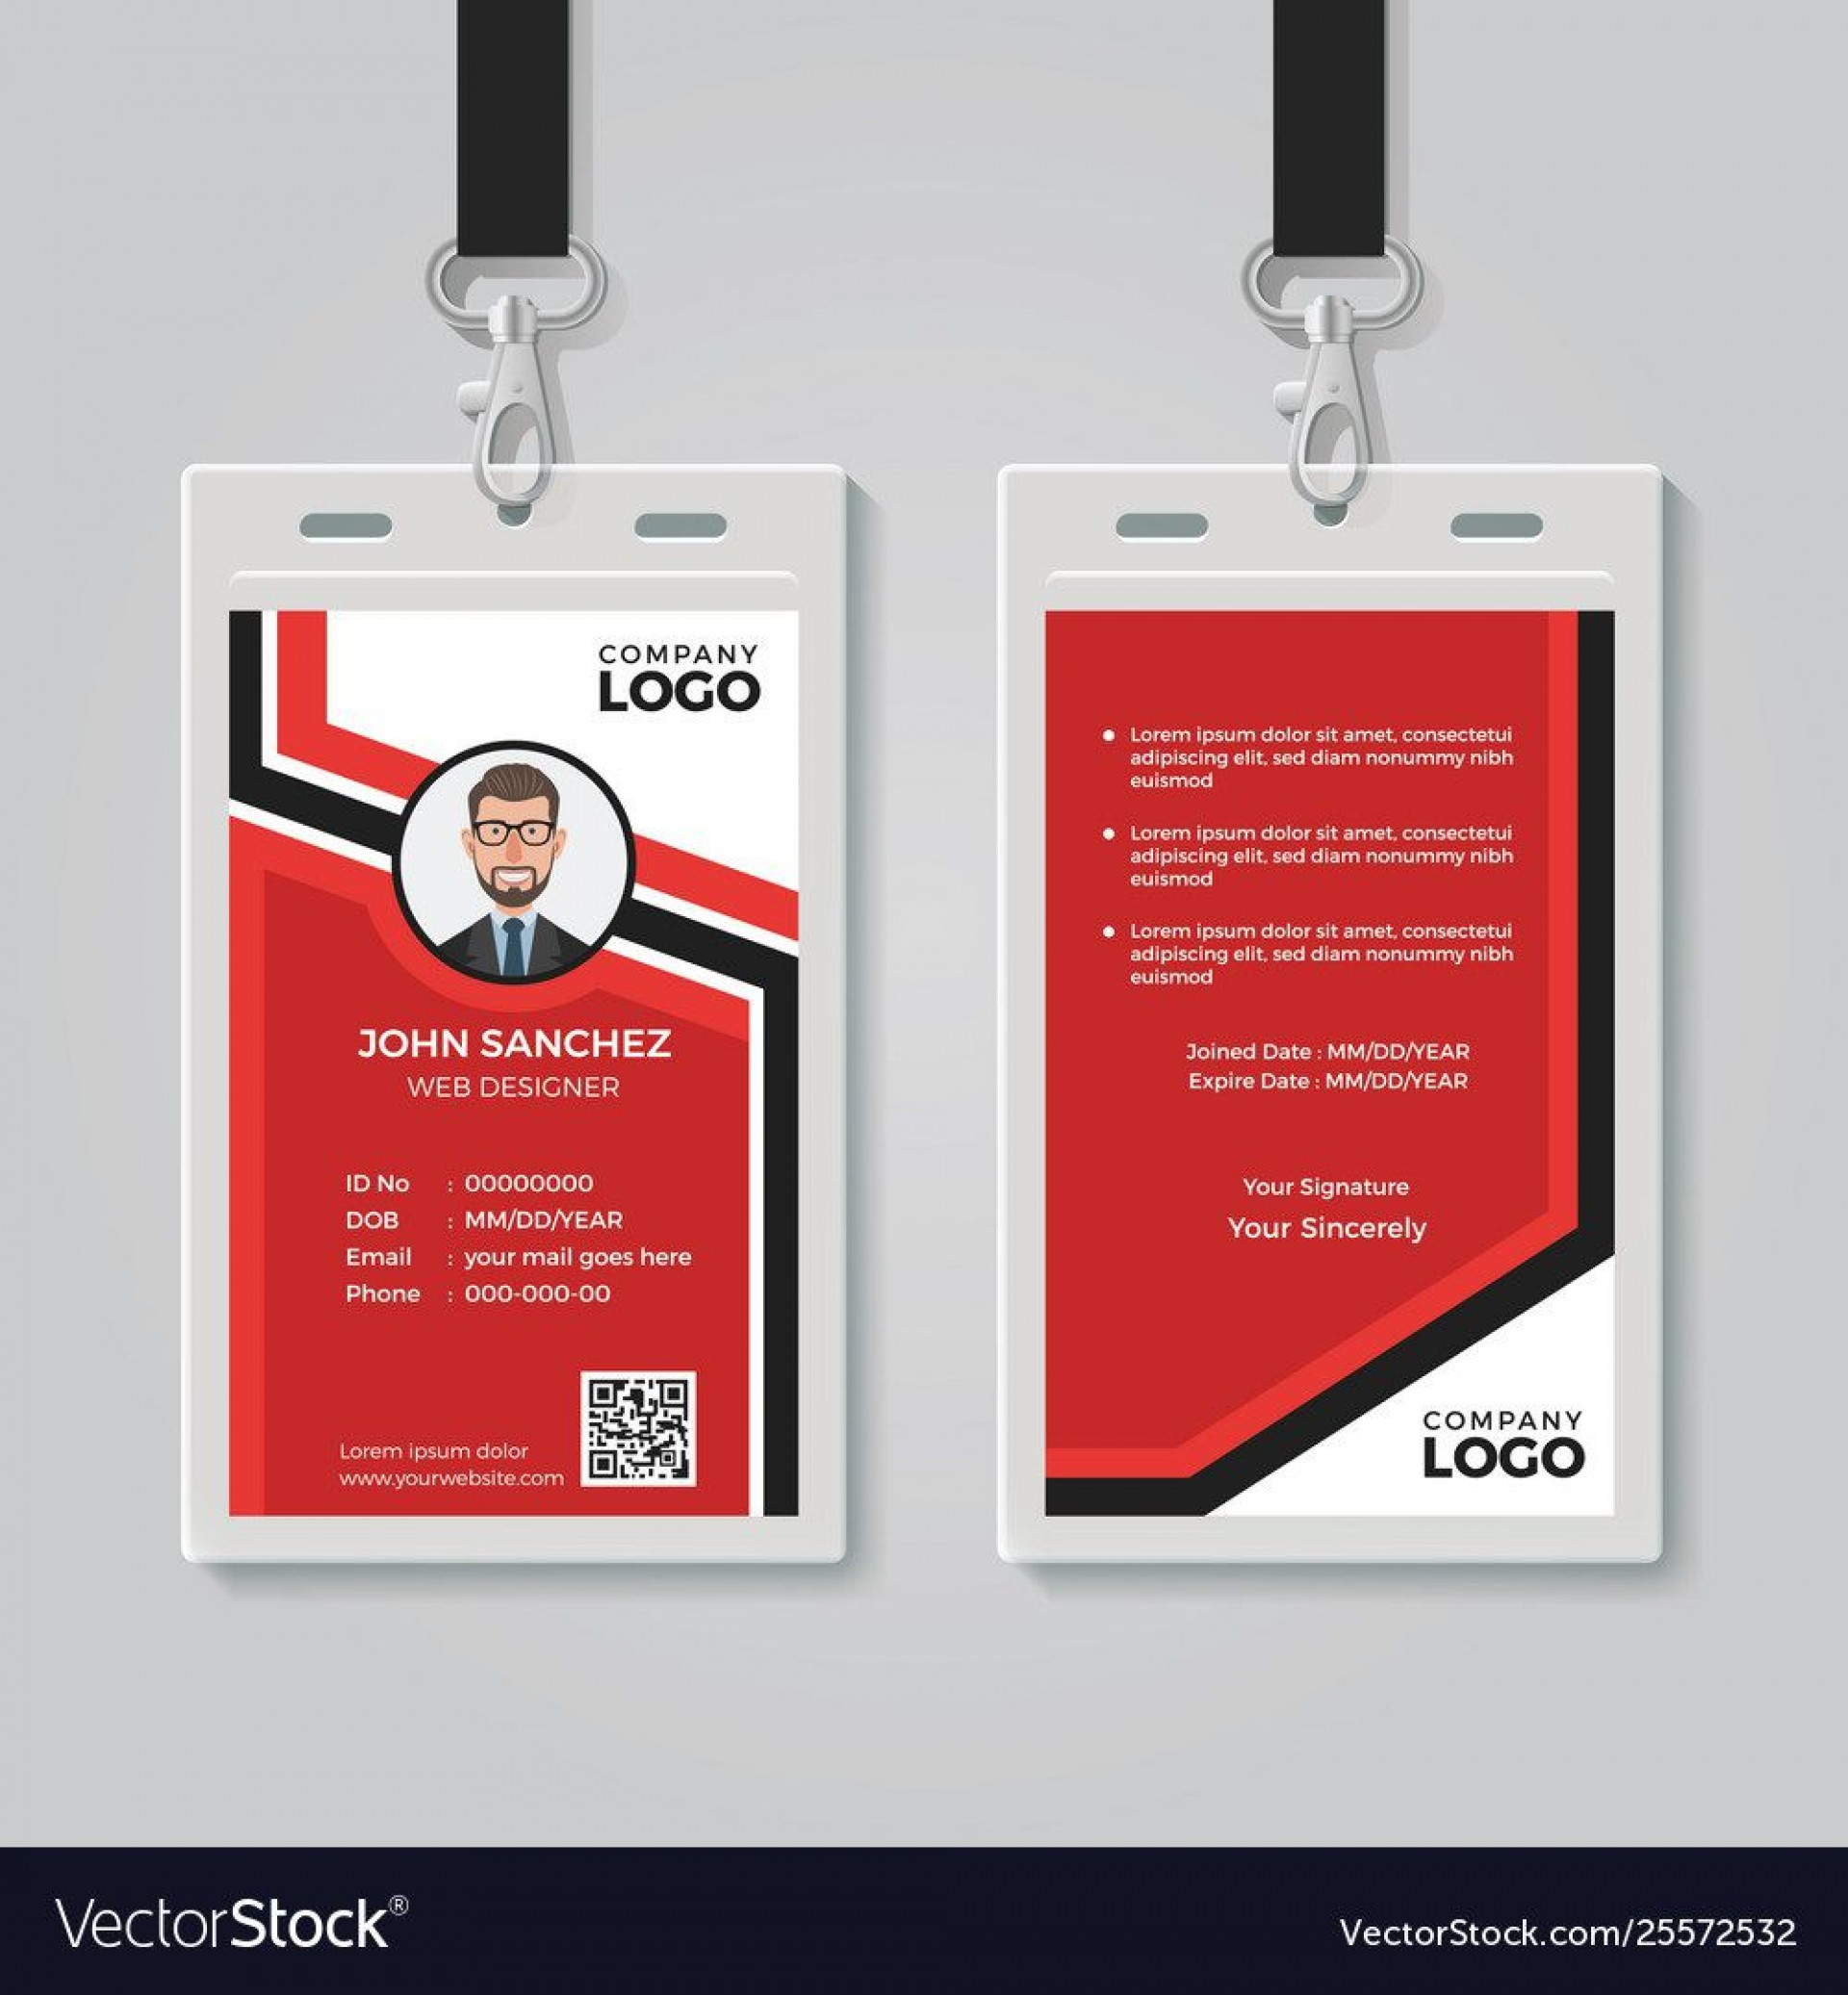 007 Stirring Free Id Badge Template High Def  Templates Card Ai Uk Illustrator1920